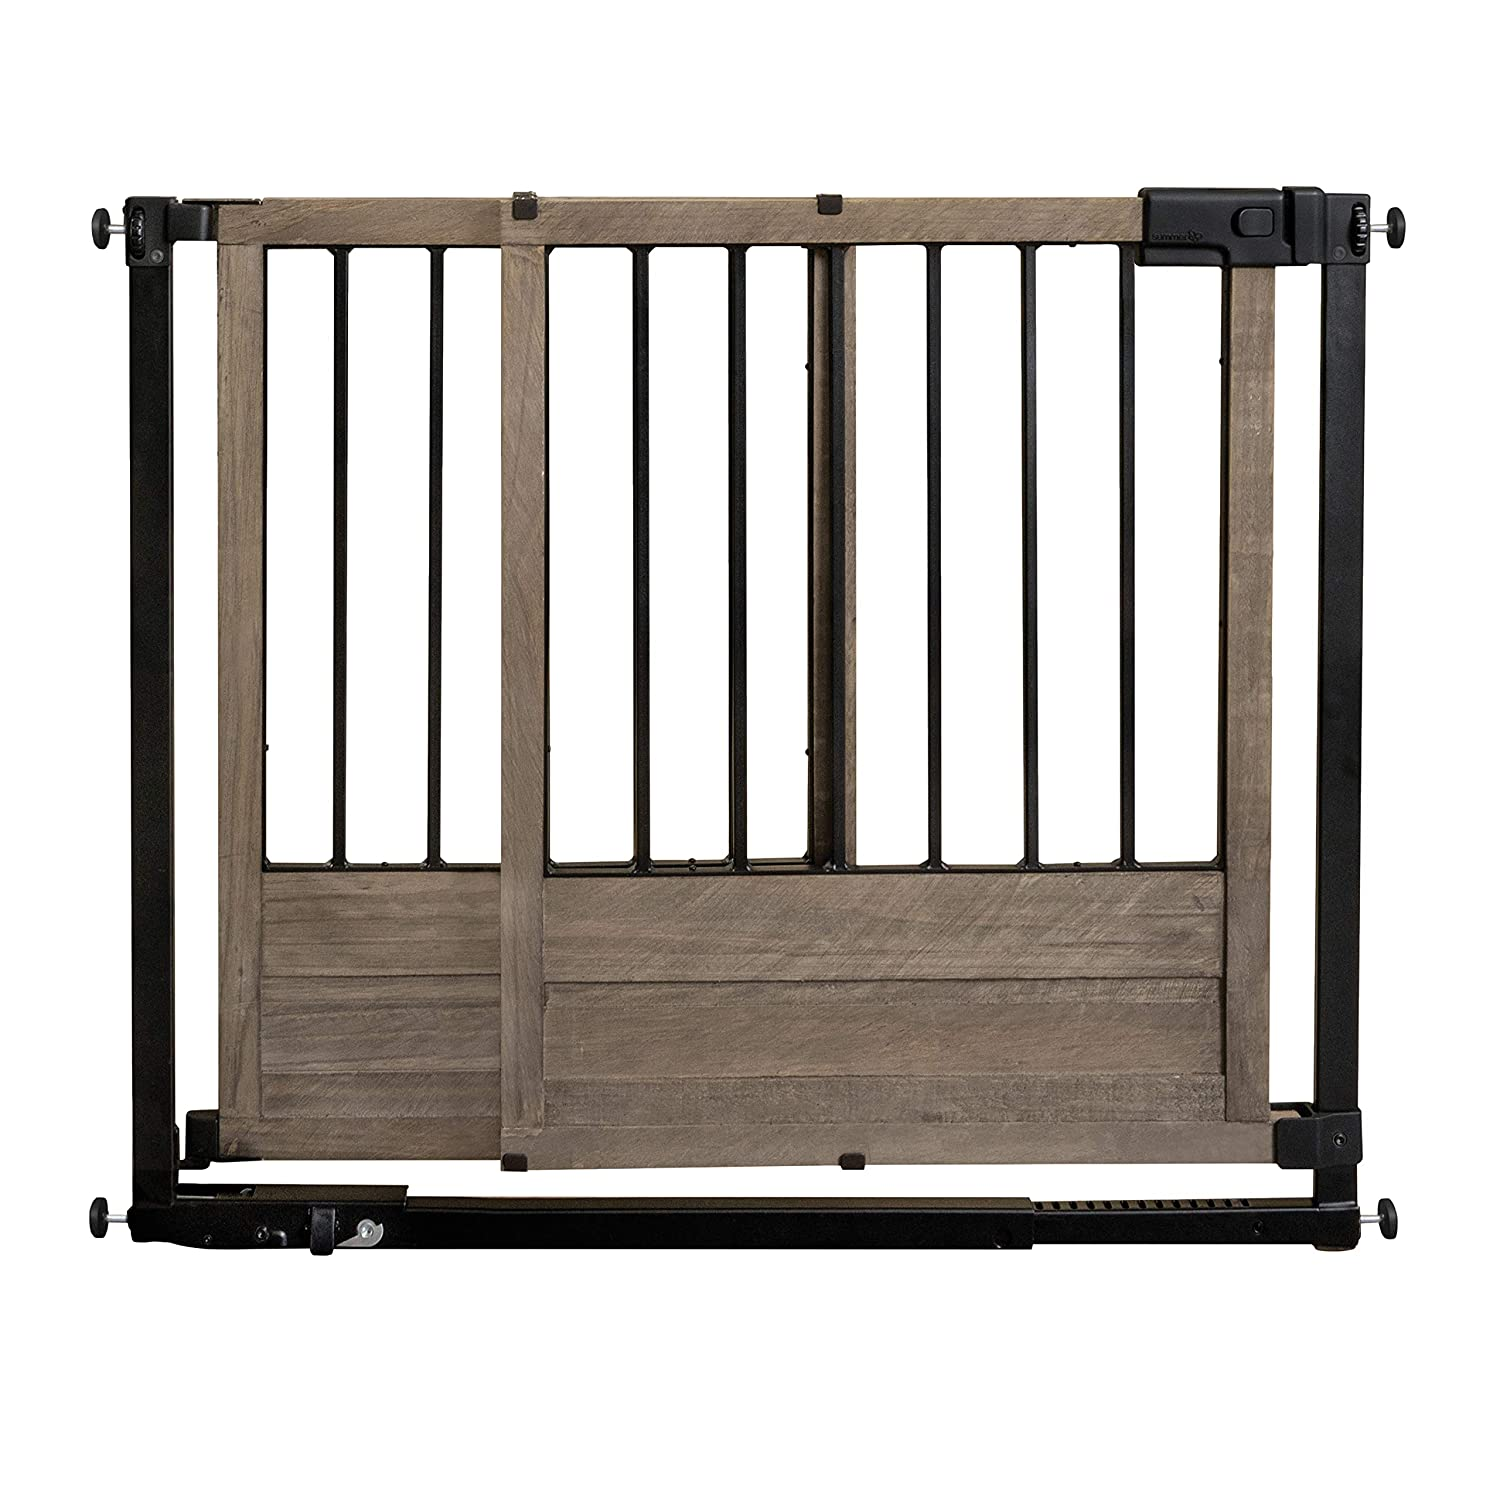 "Summer Rustic Home Safety Gate, 29"" - 42"" Wide & 30"" Tall, for Doorways & Stairways with Extra Wide Walk Through"